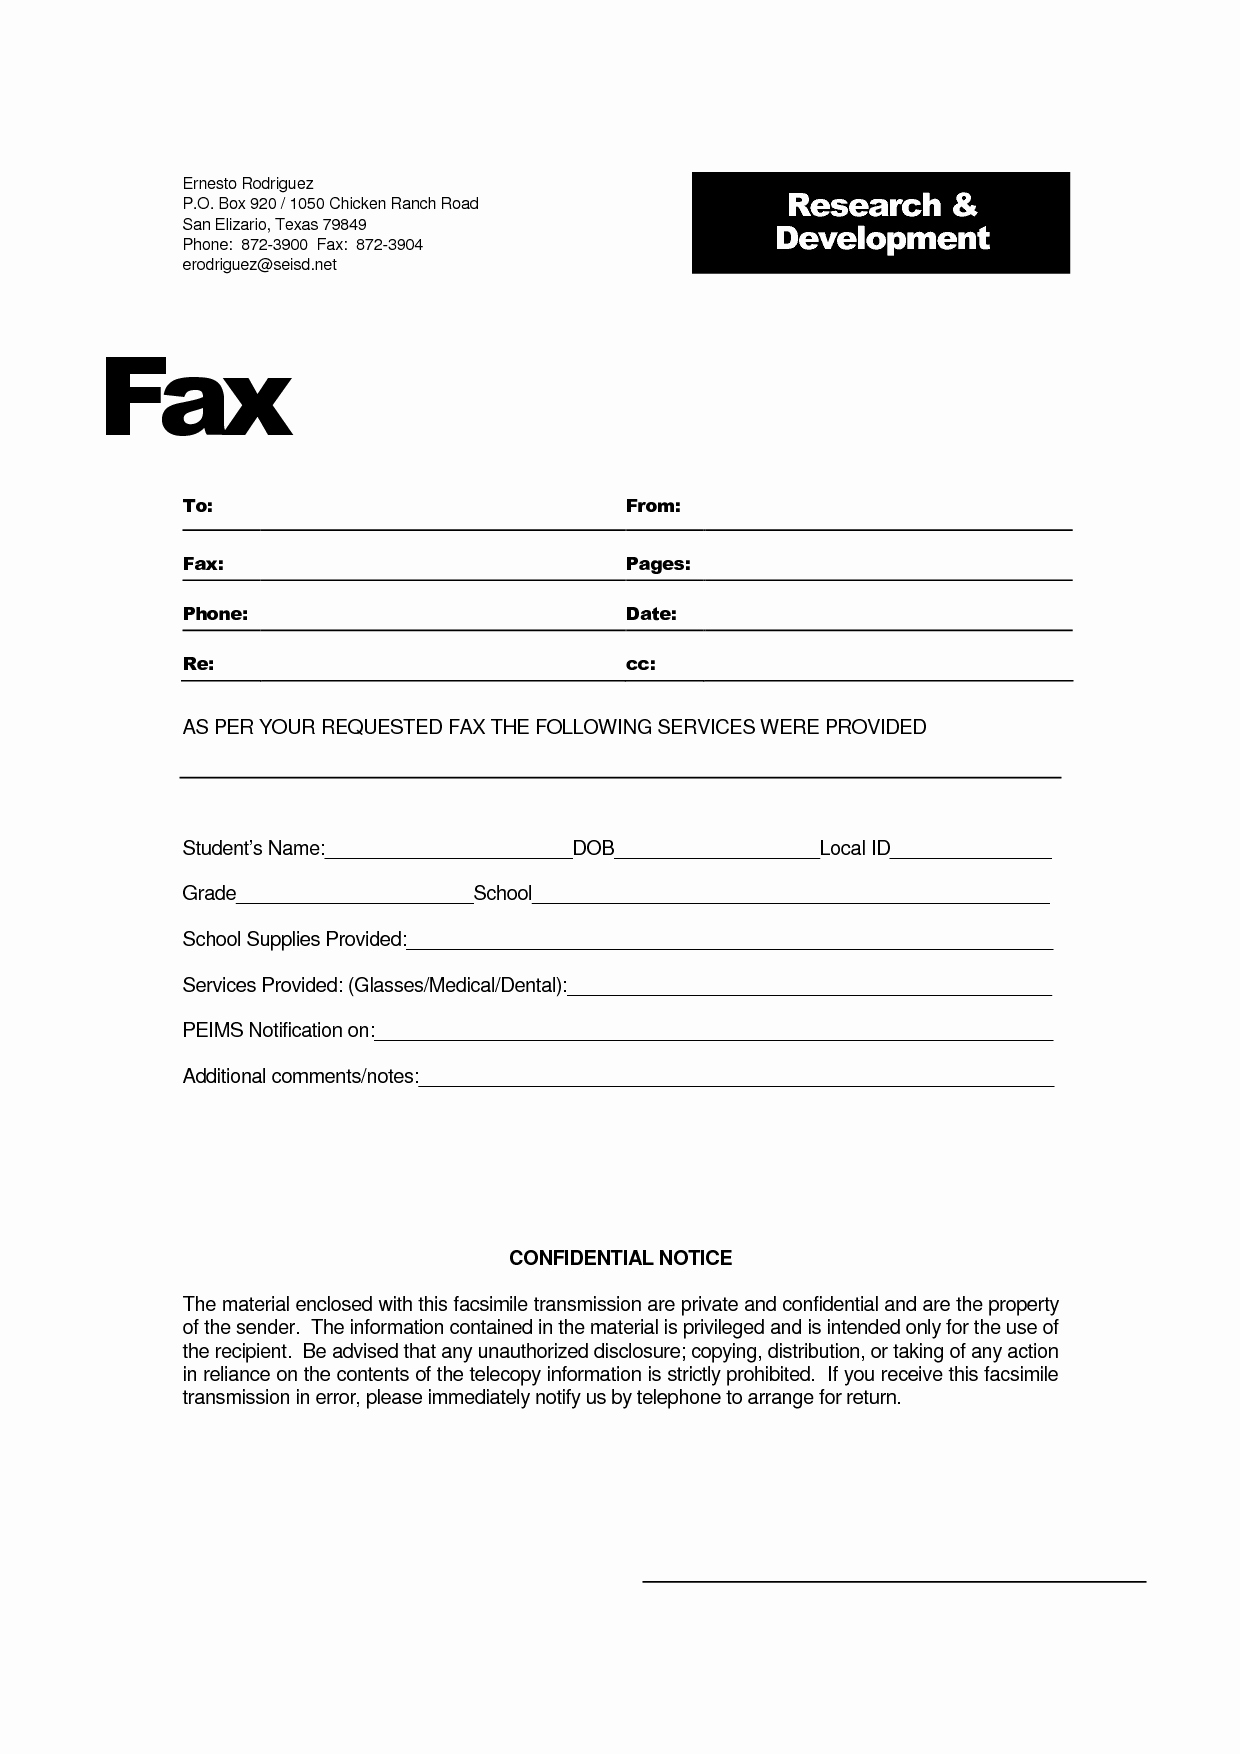 How to Fax Cover Sheet Fresh Cover Confidential Fax Cover Sheet